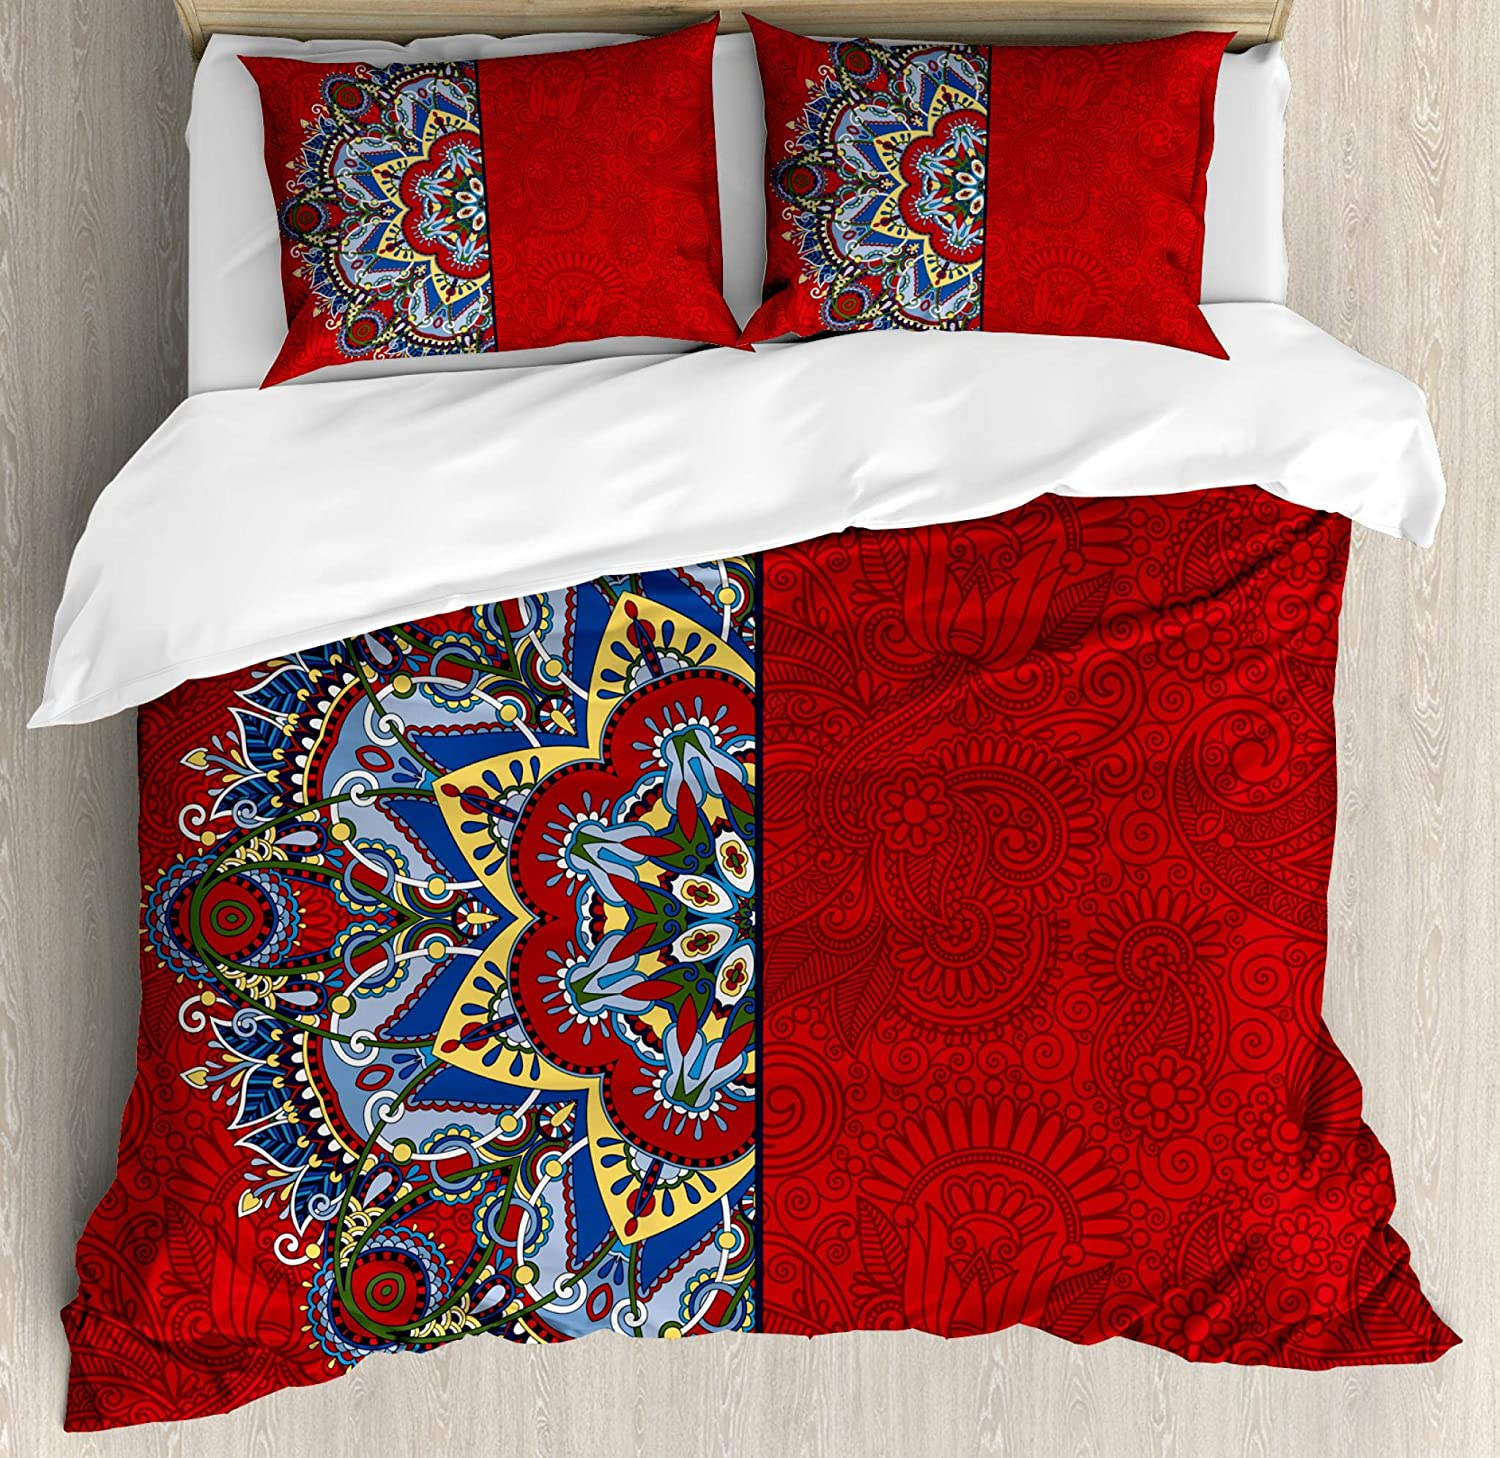 Ambesonne Red Mandala Duvet Cover Set, Ukranian Design Half Mandala with Swirls and Flowers Image, Decorative 3 Piece Bedding Set with 2 Pillow Shams, Queen Size, Burgundy White